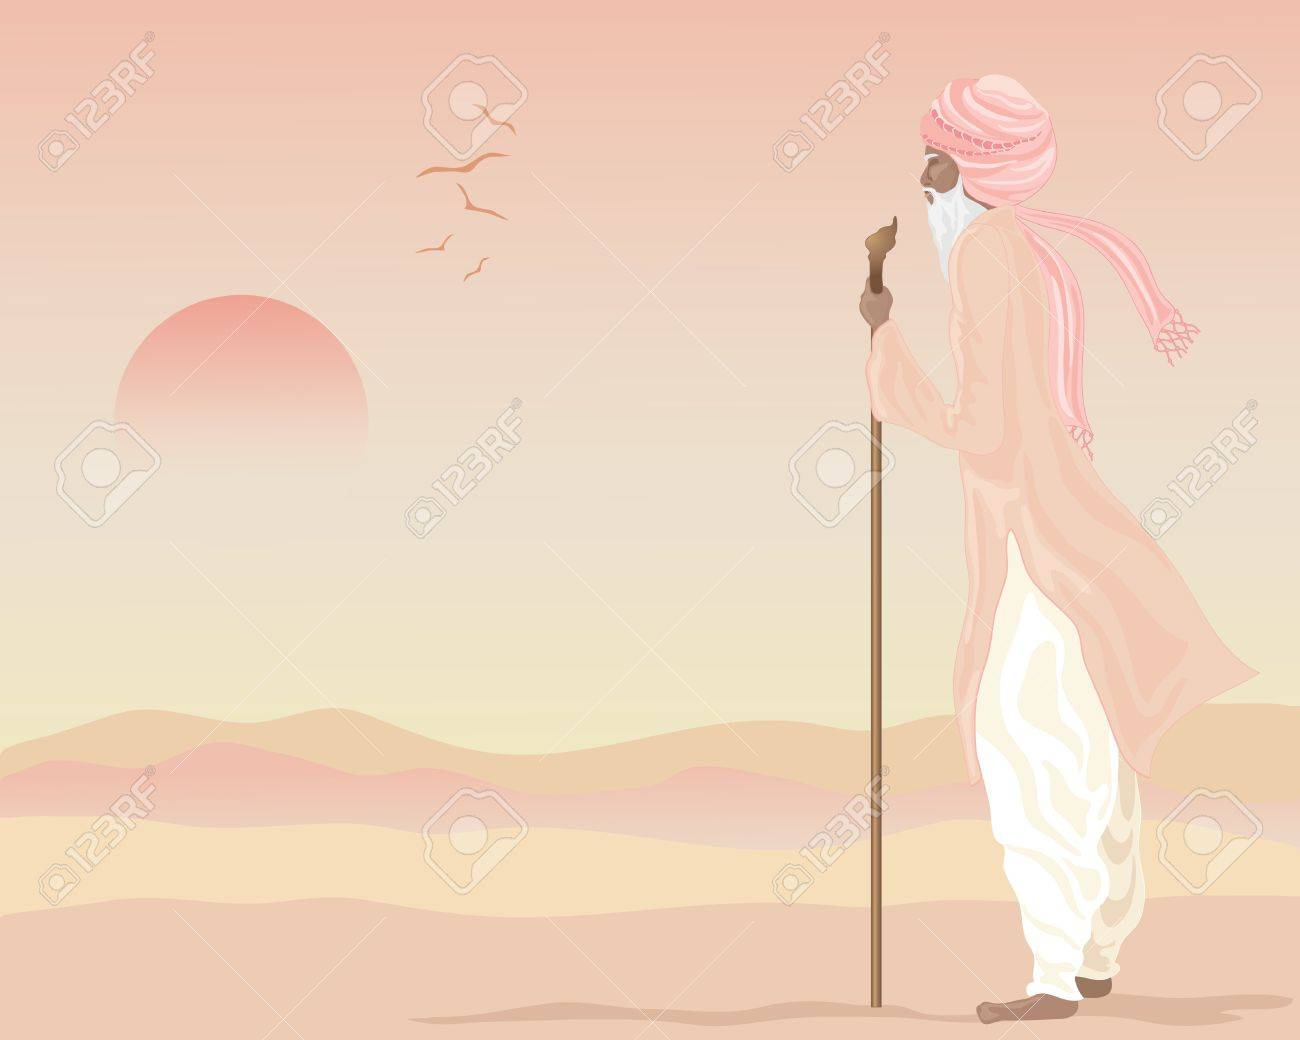 an illustration of an indian farmer in traditional rural clothing standing looking across an arid landscape underneath a setting sun Stock Vector - 13895390